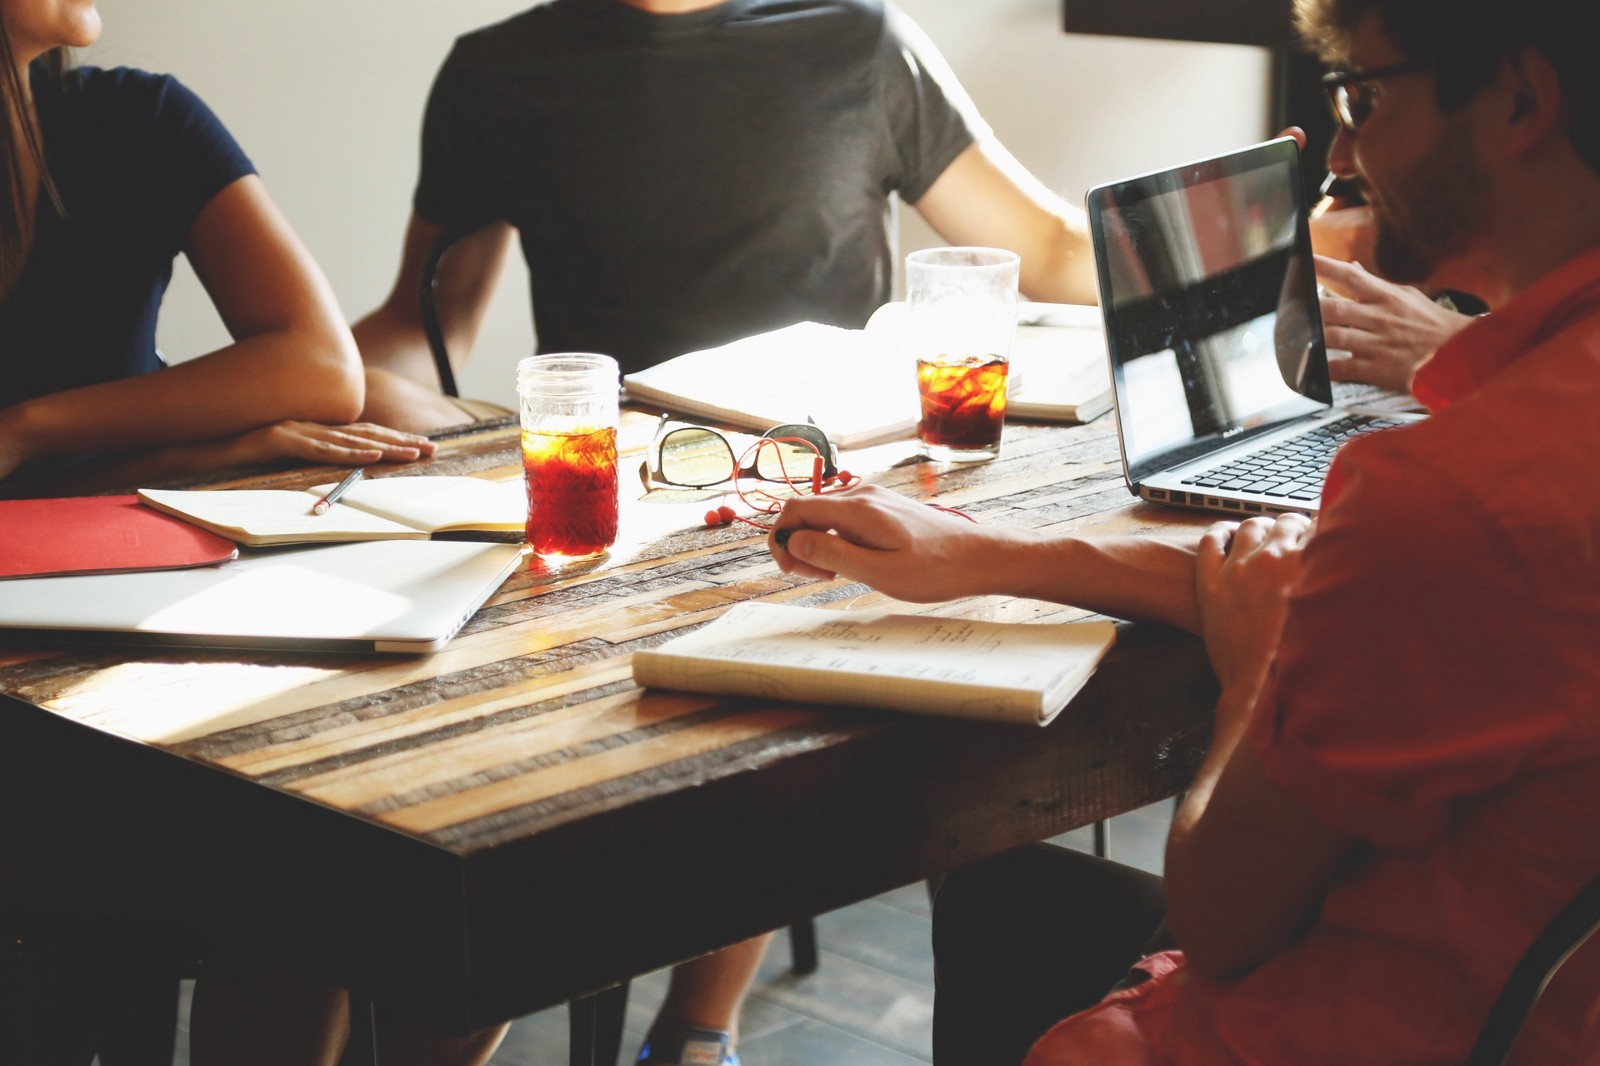 3 Real Steps to Turn Your Idea Into a Business